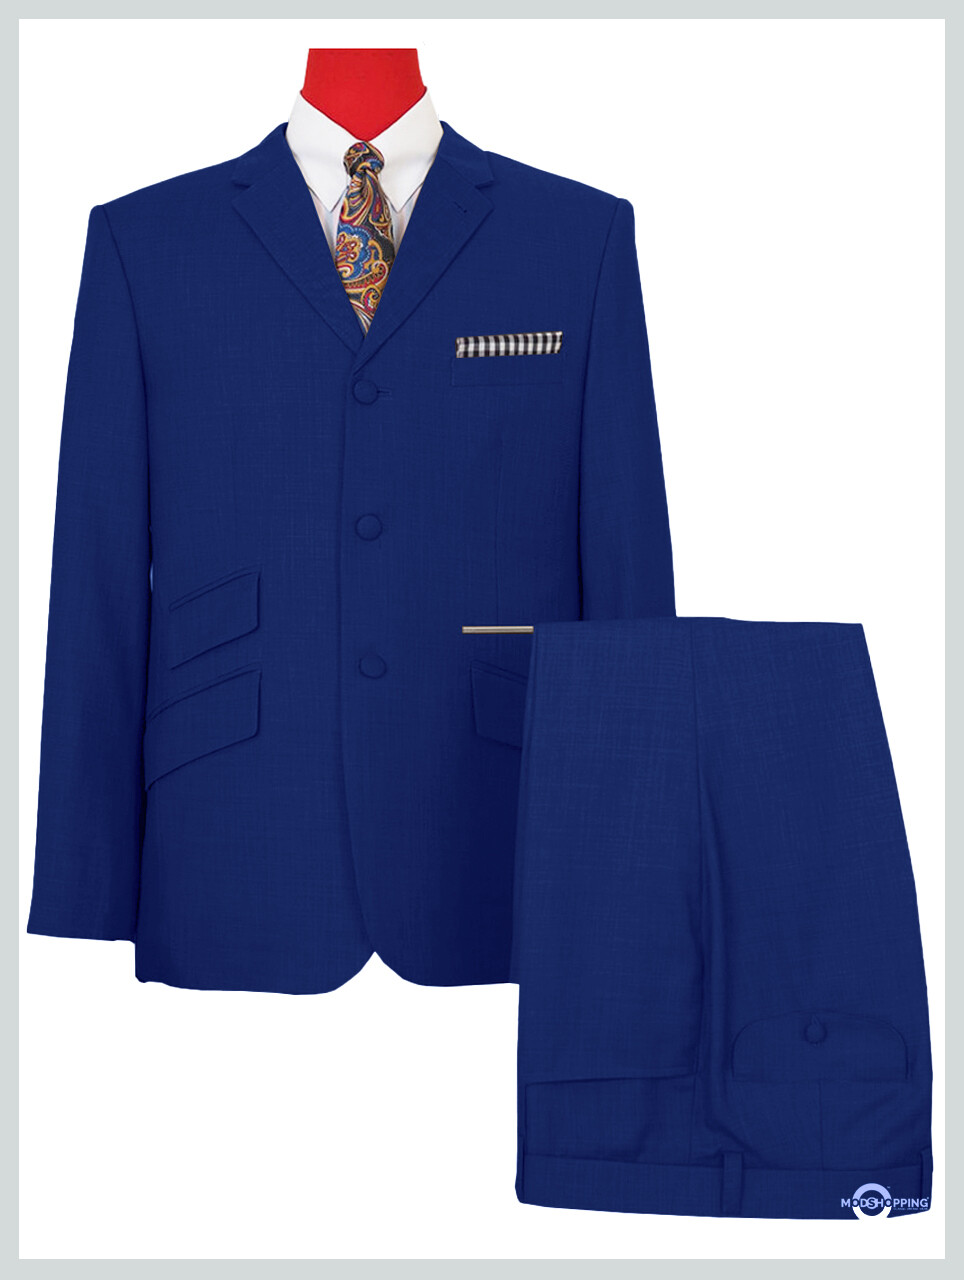 Mod Suit | Royal Blue Plain Color 3 Button Suit